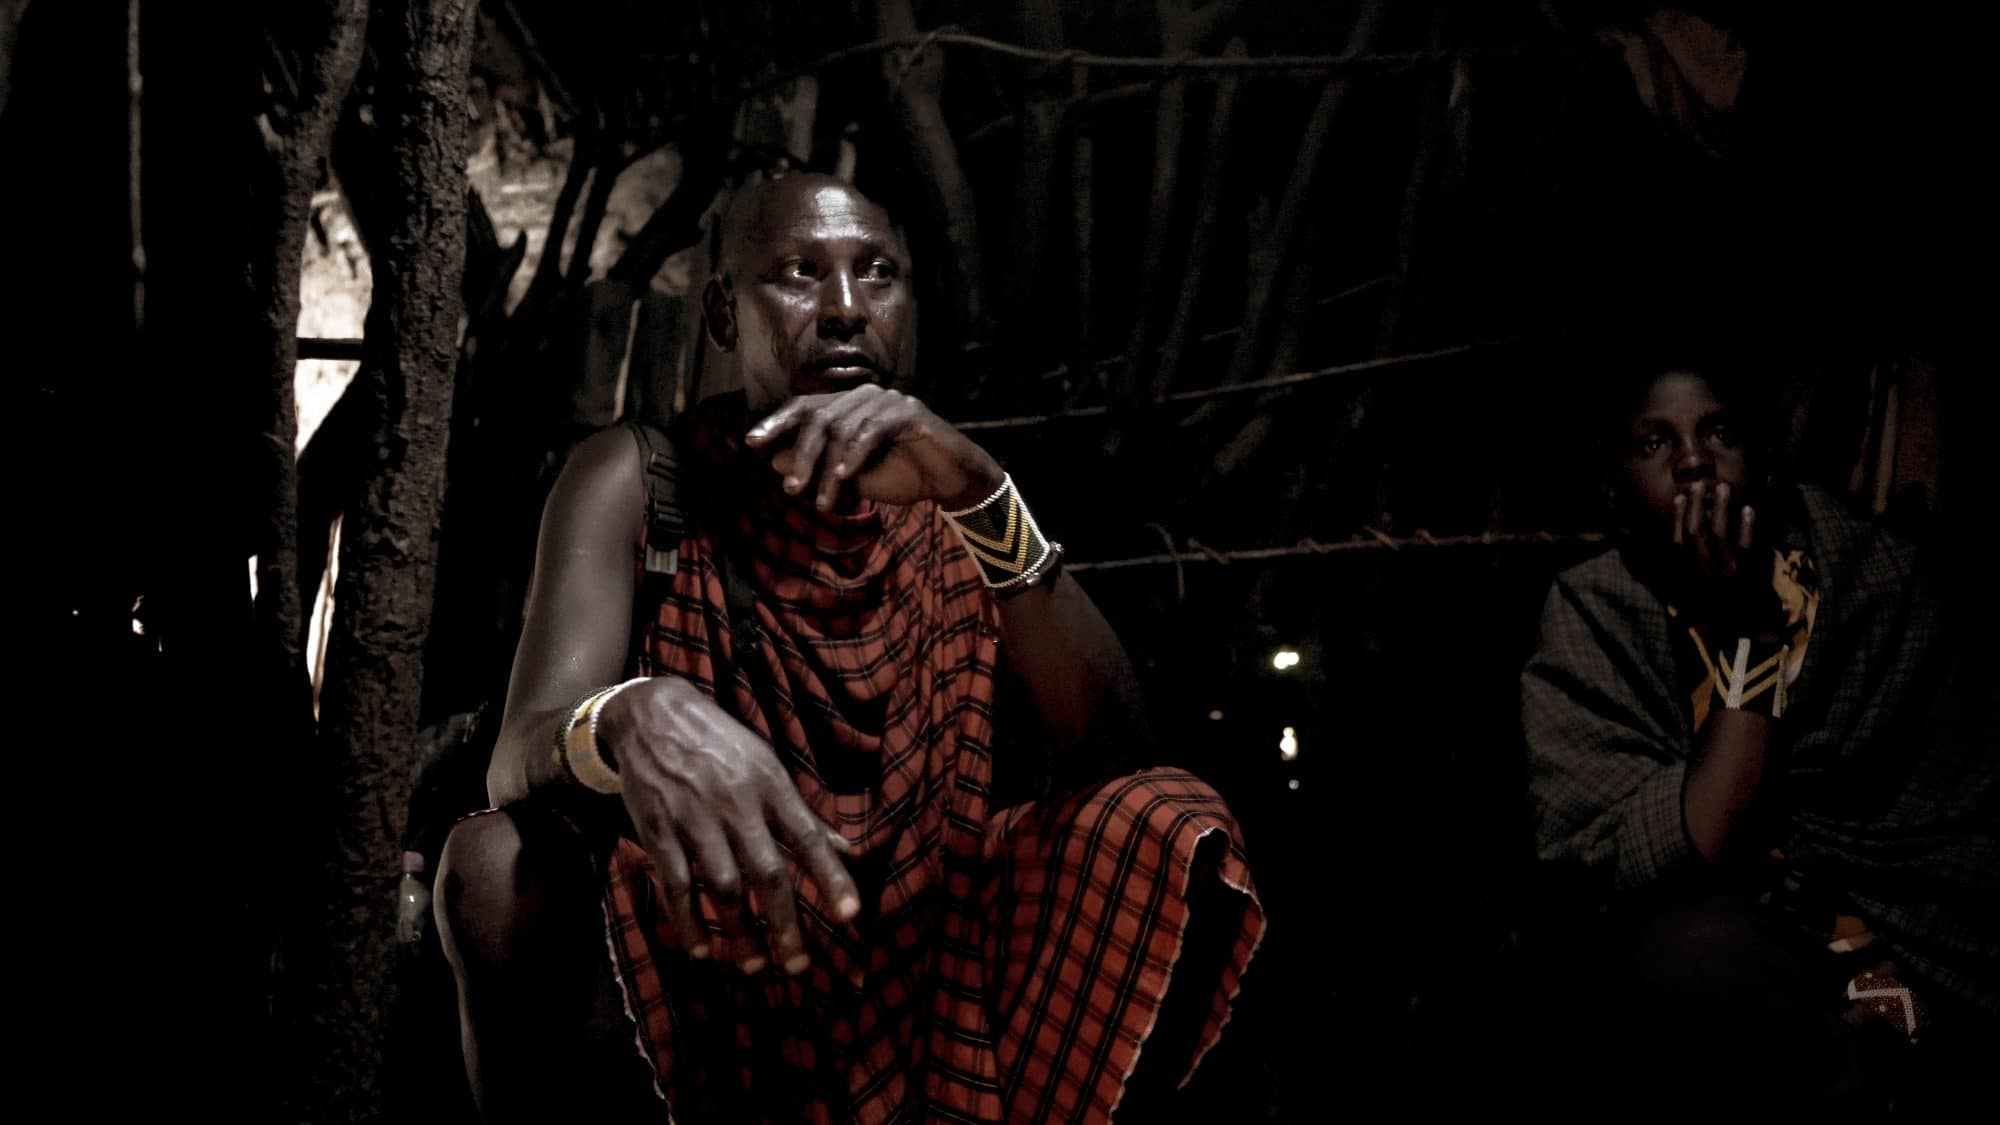 maasai interveiw inside his house